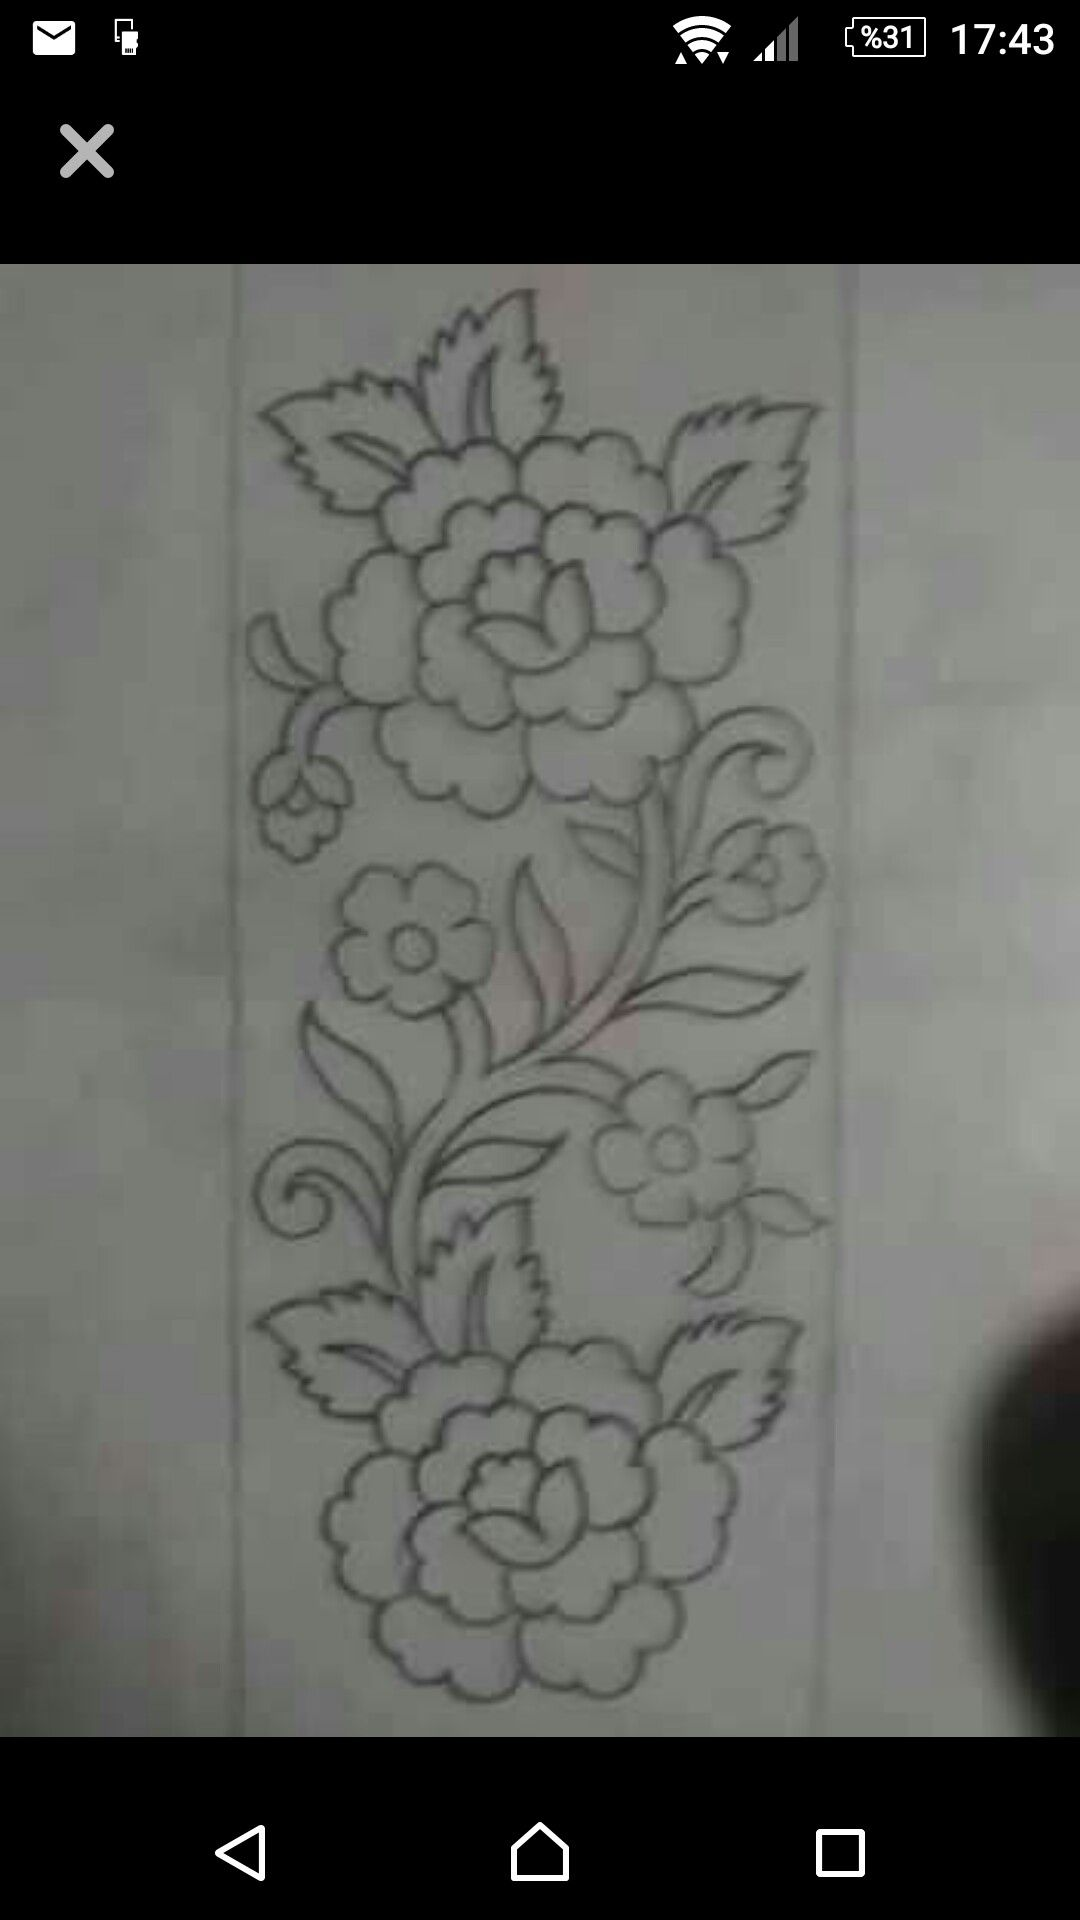 Pin By Maher Meknas On Cizimler Sewing Embroidery Designs Border Embroidery Designs Hand Embroidery Designs